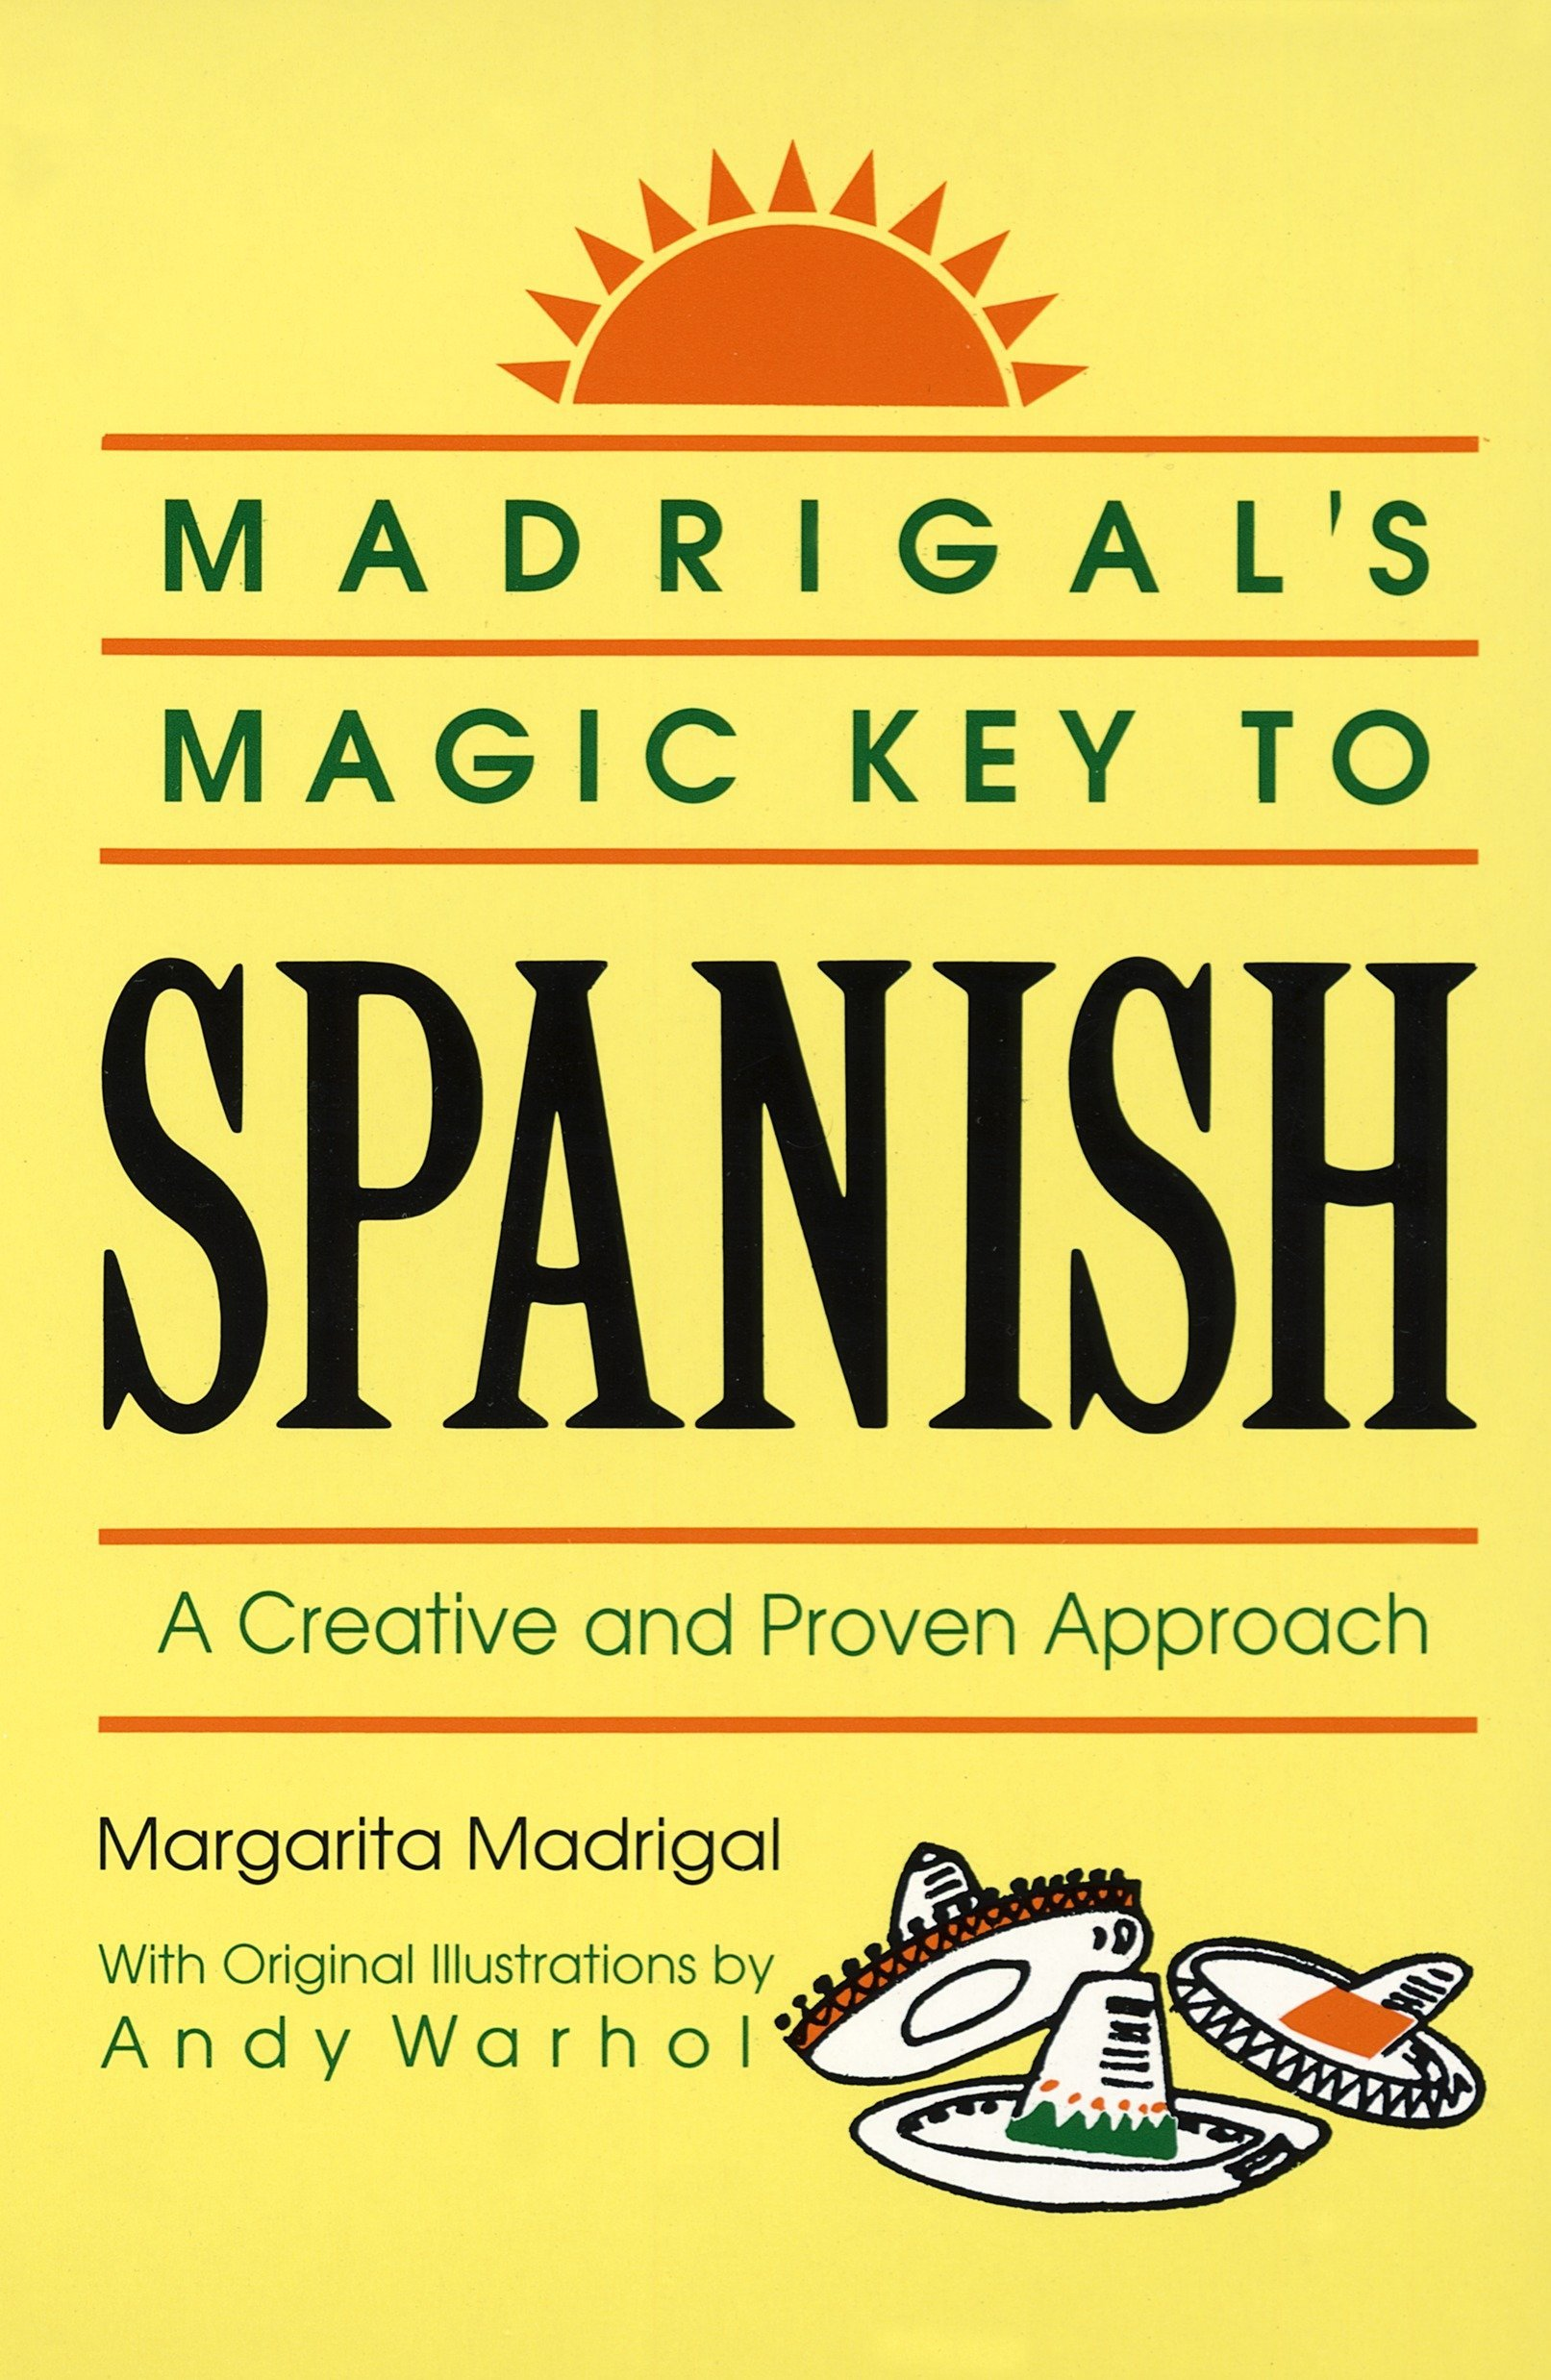 madrigals magic key to spanish by margarita madrigal andy warhol illustrator